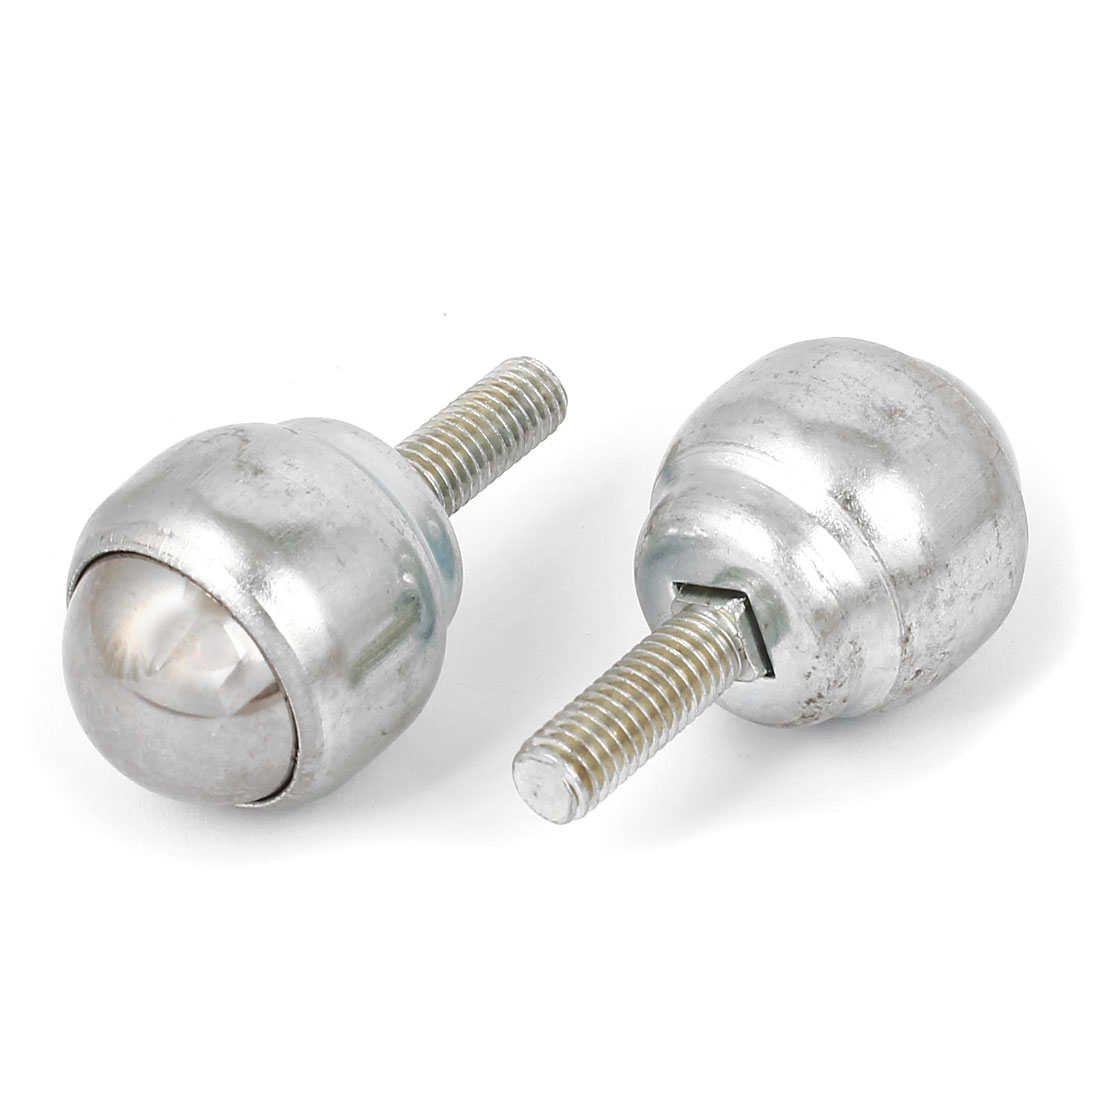 M8 Male Thread Bolt Type Ball Transfer Bearing Unit Roller Silver Tone 2Pcs